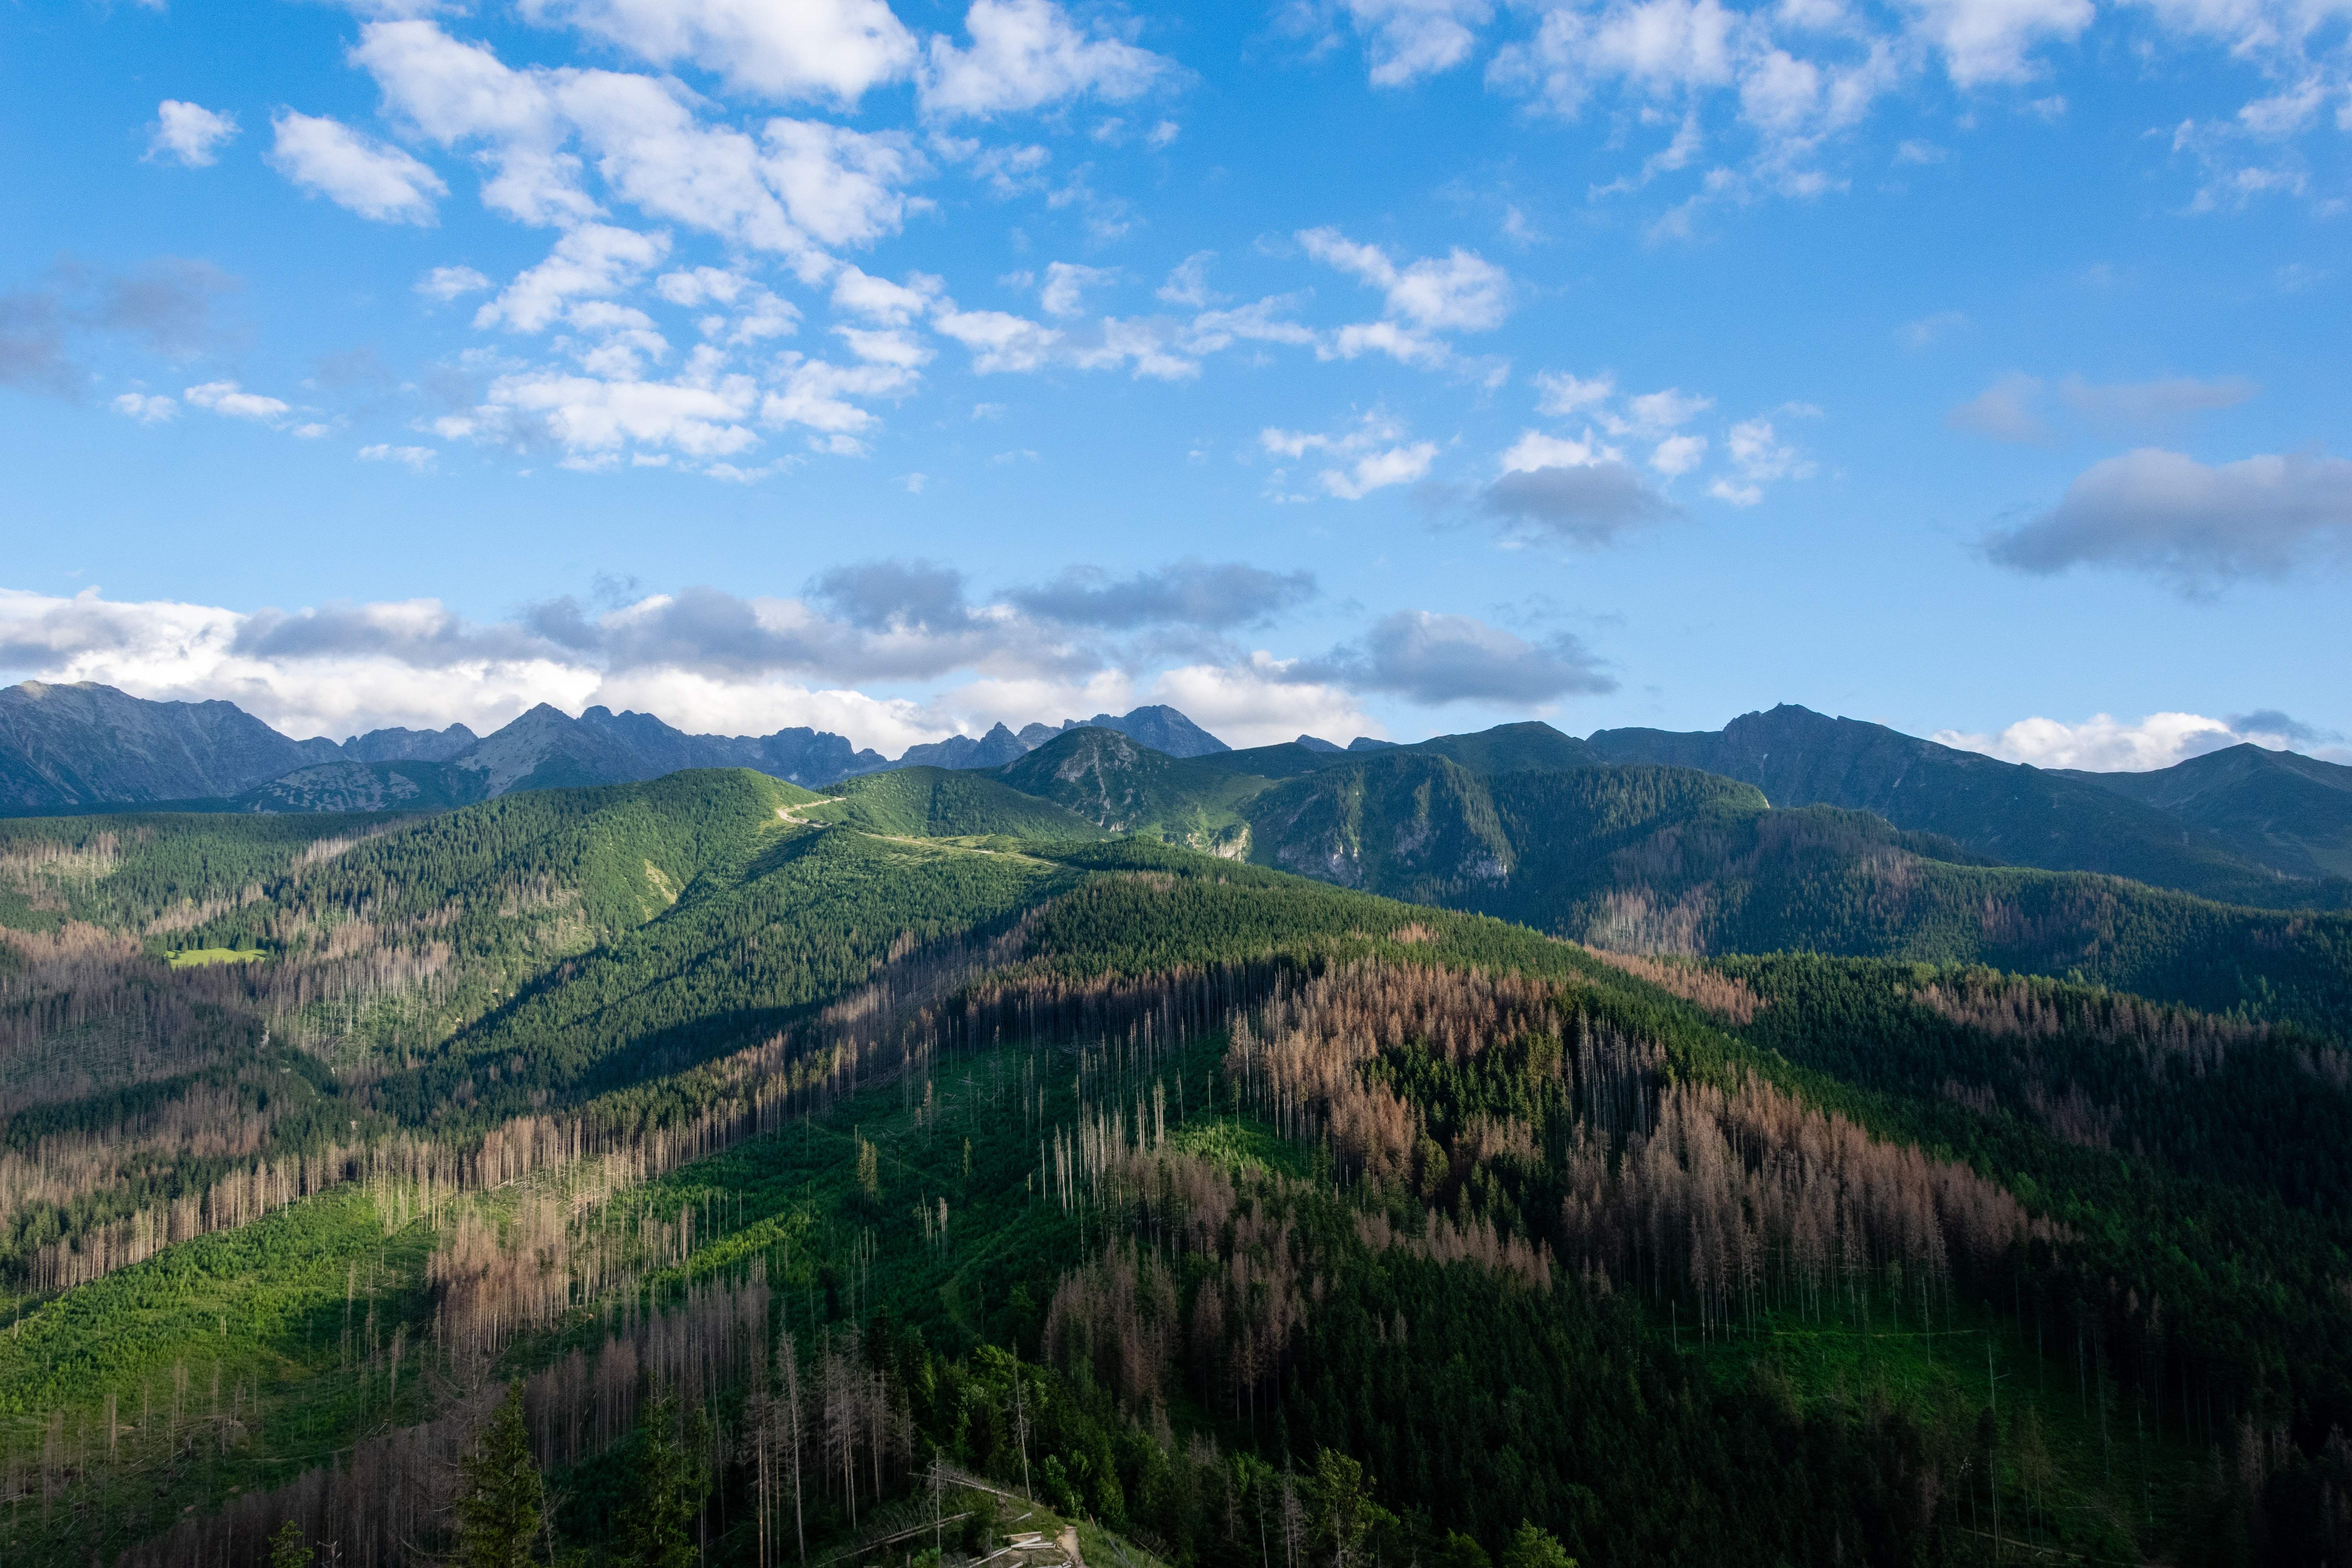 bird's-eye photography of mountains under cirrus clouds and blue calm sky